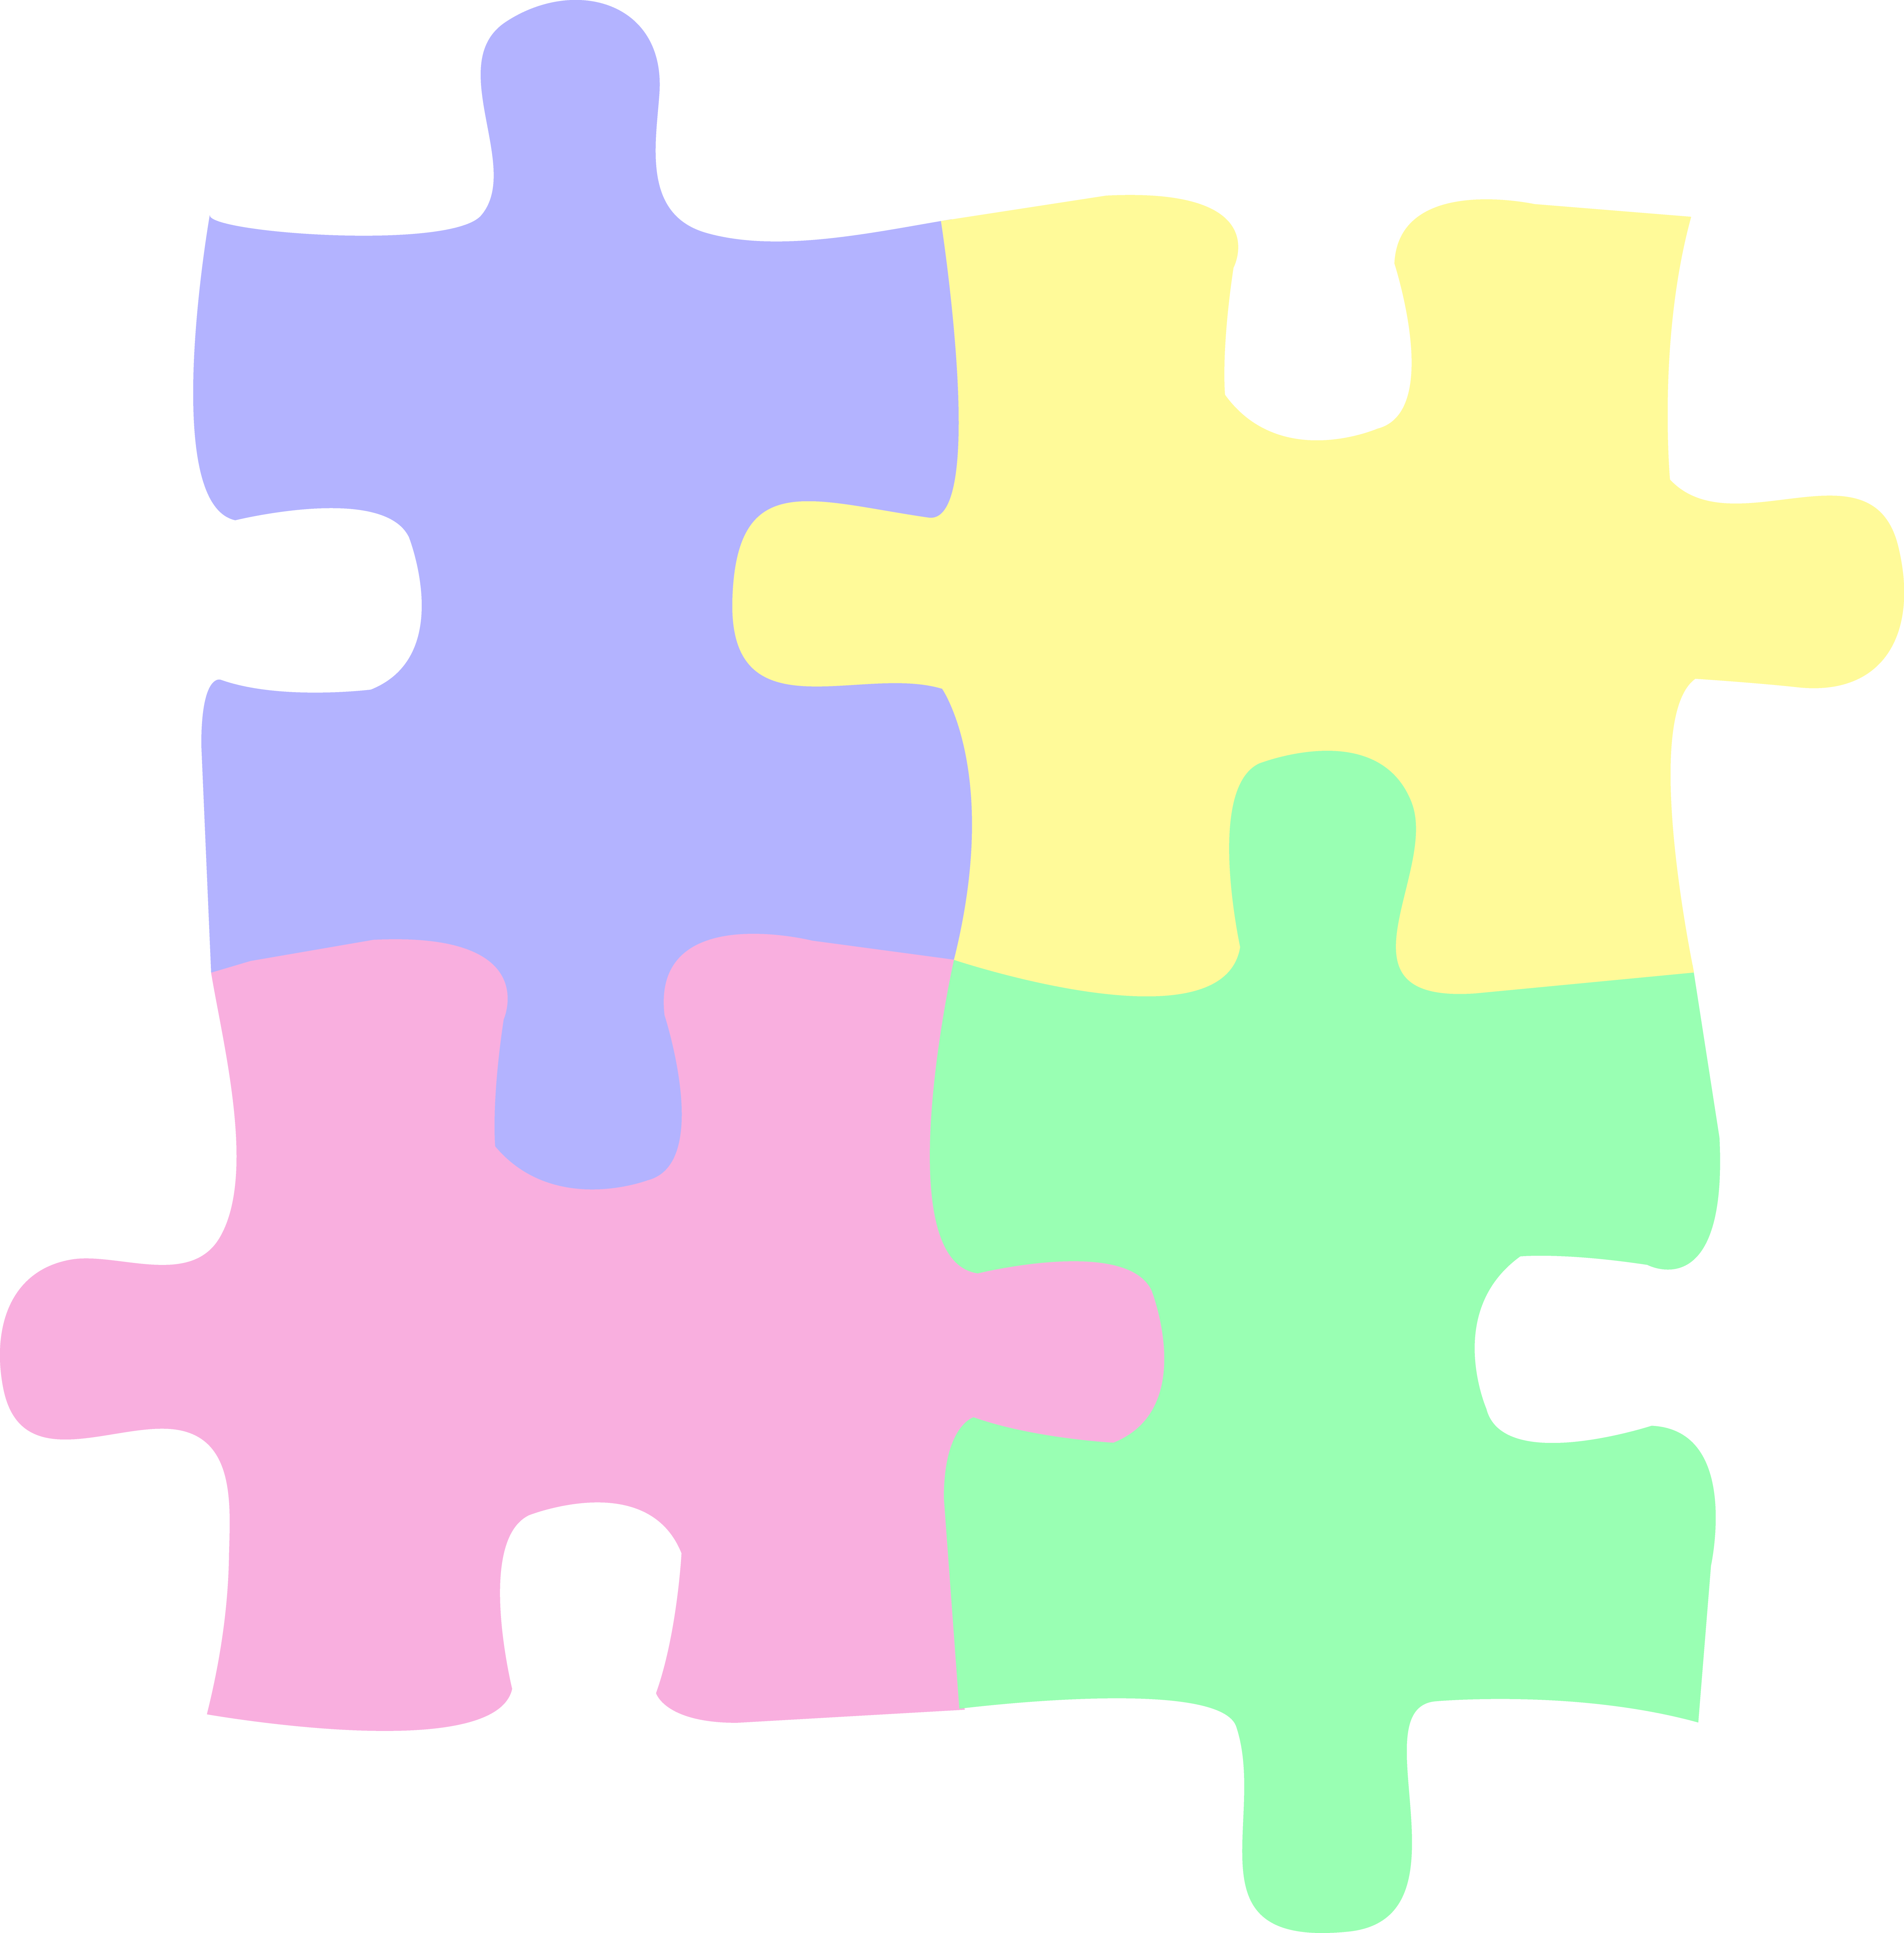 puzzles clipart colorful